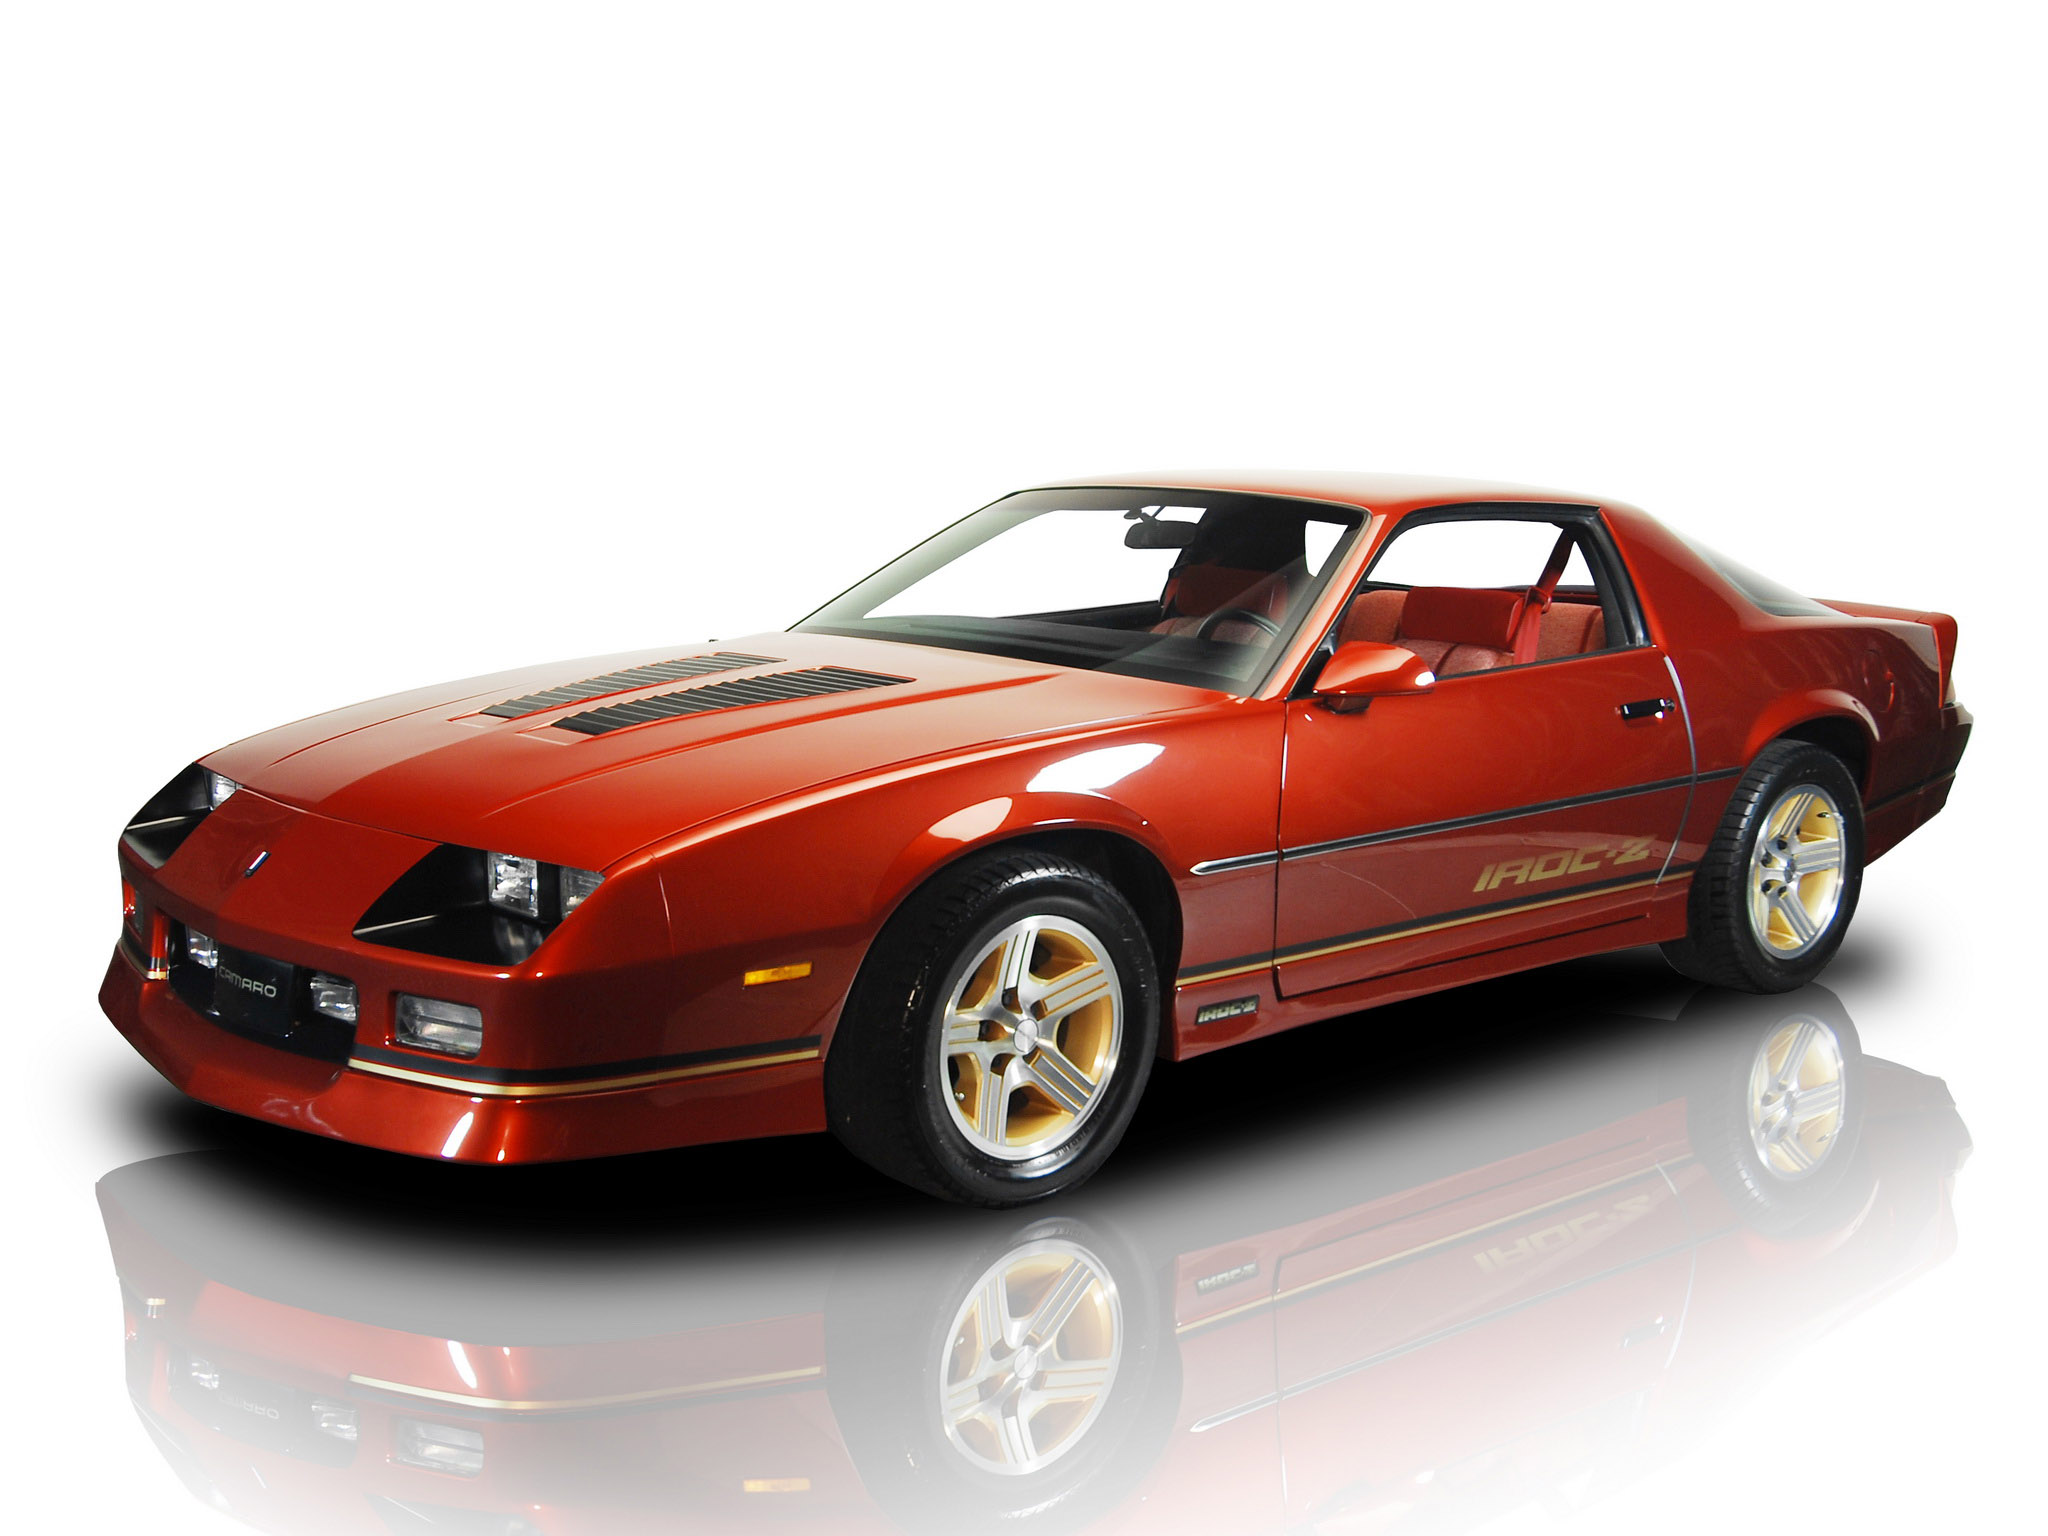 Chevrolet Camaro IROC Z Wallpapers High Quality Download 2048x1536